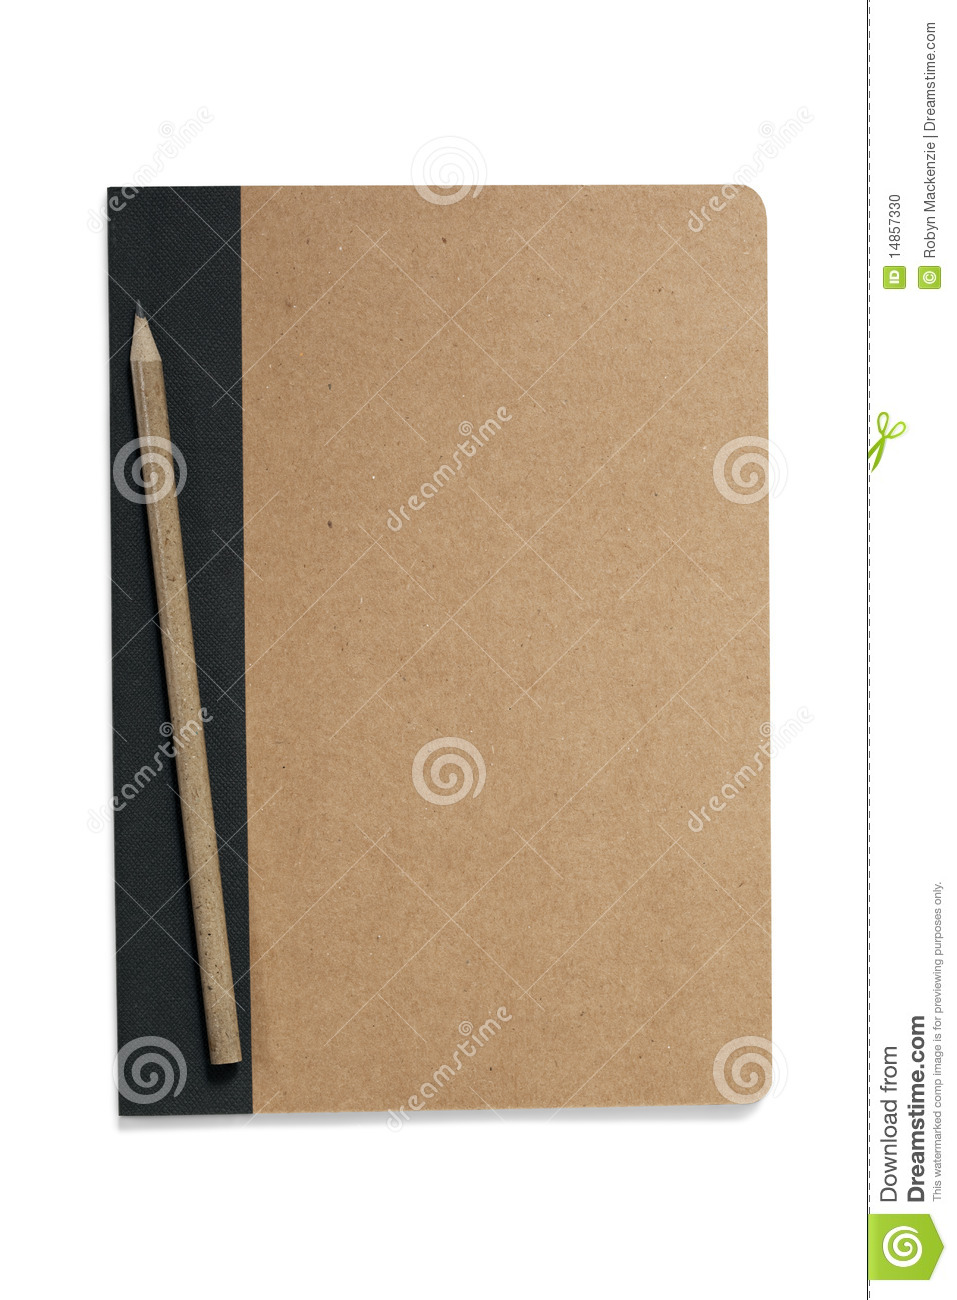 Pencil on Notepad (with Path)